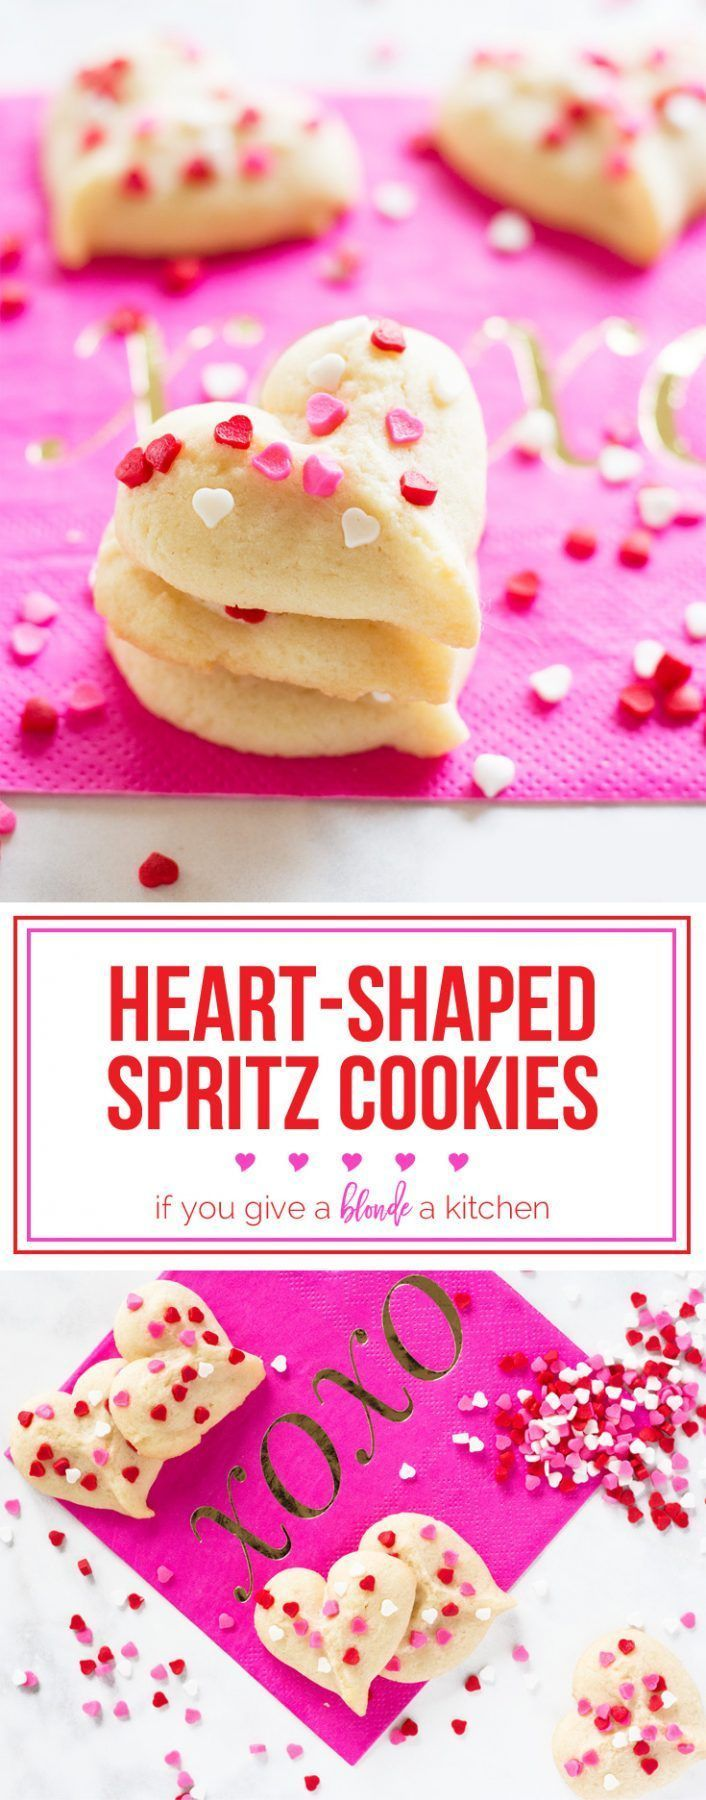 Heart-shaped butter spritz cookies are a yummy Vatenine's Day treat! | http://www.ifyougiveablondeakitchen.com